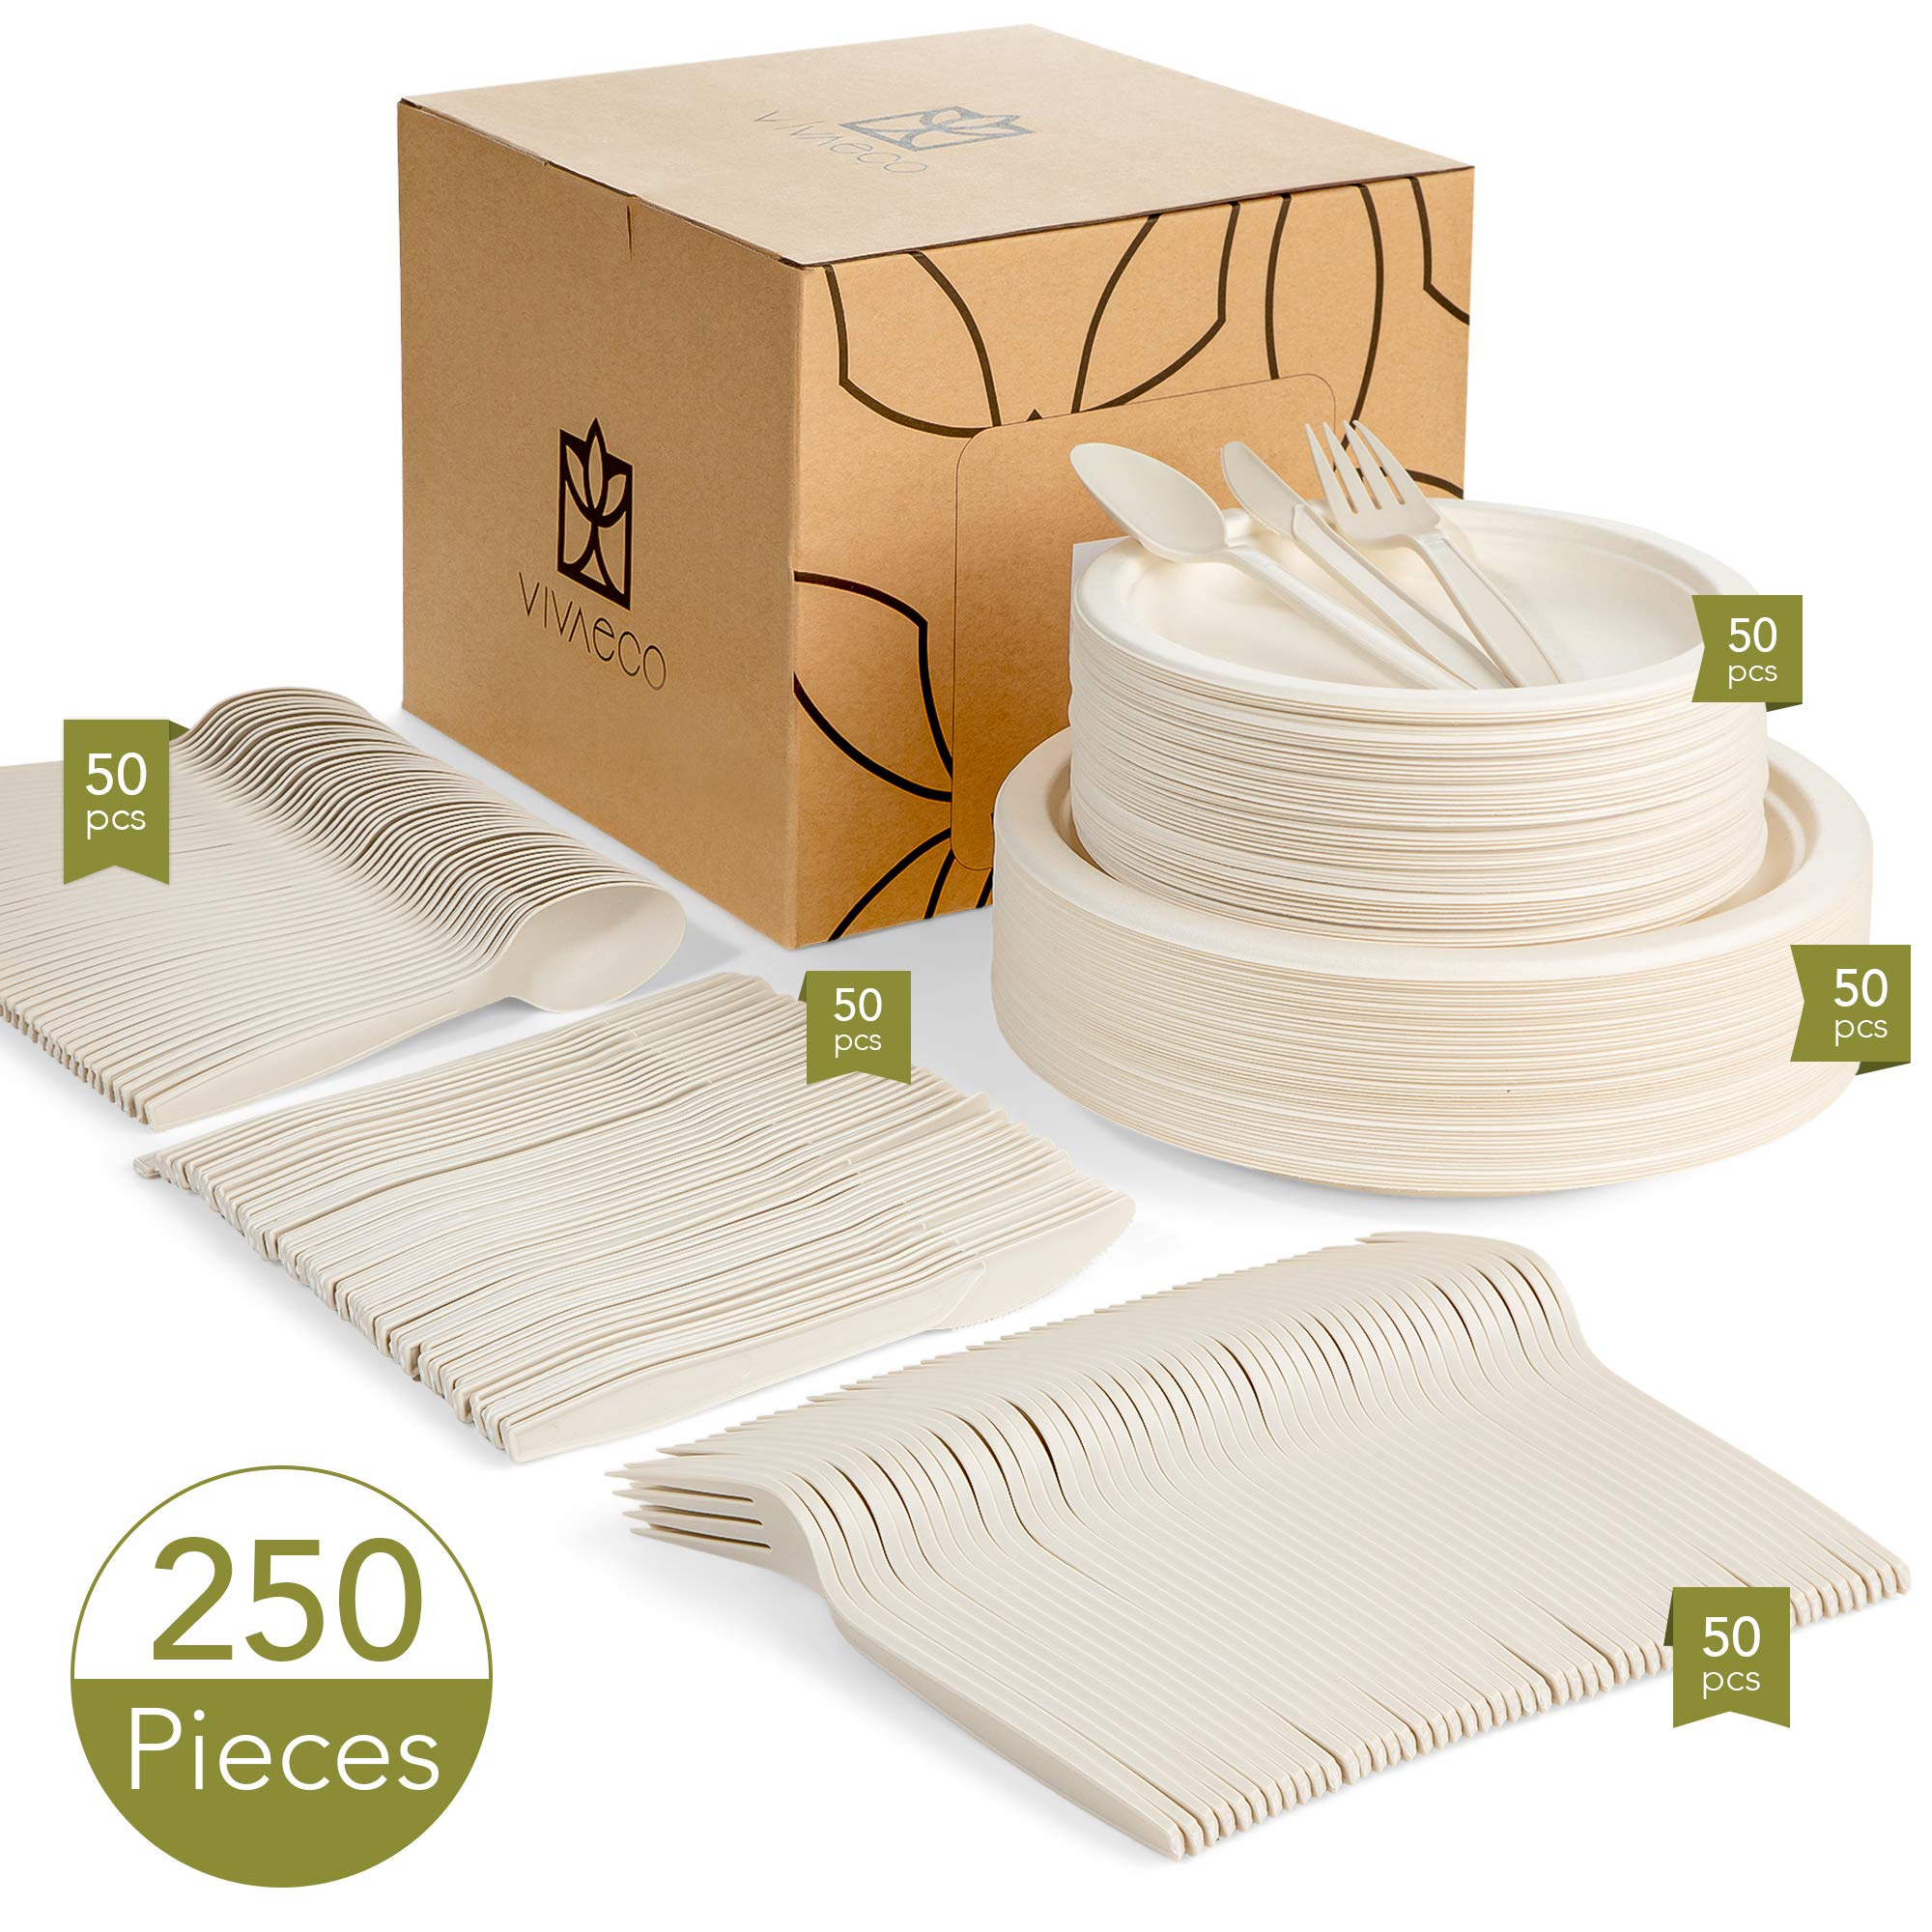 Biodegradable, Compostable Plates and Utensils, 250 Pieces, Service for 50 - Eco-Friendly, Disposable Plates for Parties, Microwave and Freezer Safe - Premium, Biodegradable Dinnerware Set (White)